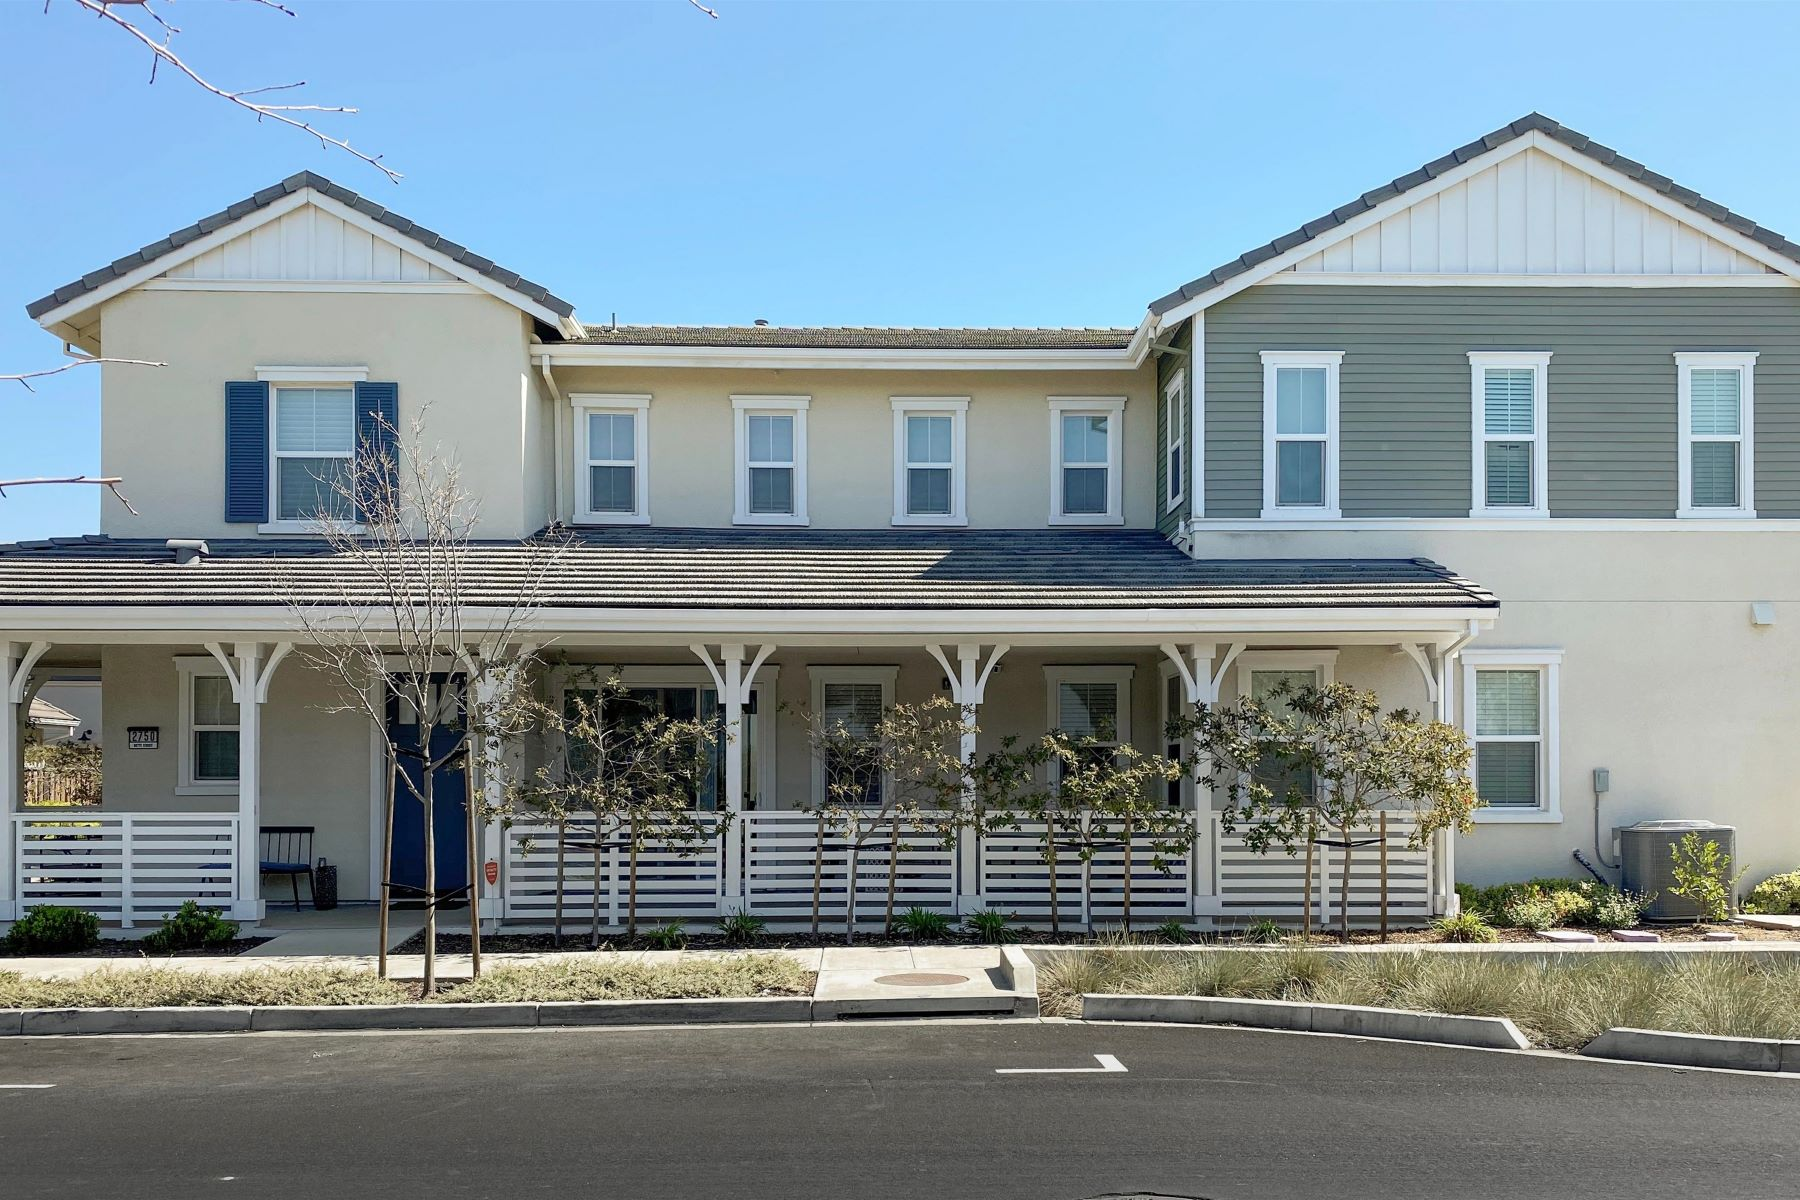 Single Family Homes for Sale at Spacious Open Floor Plan 2750 Bette Street Alameda, California 94501 United States